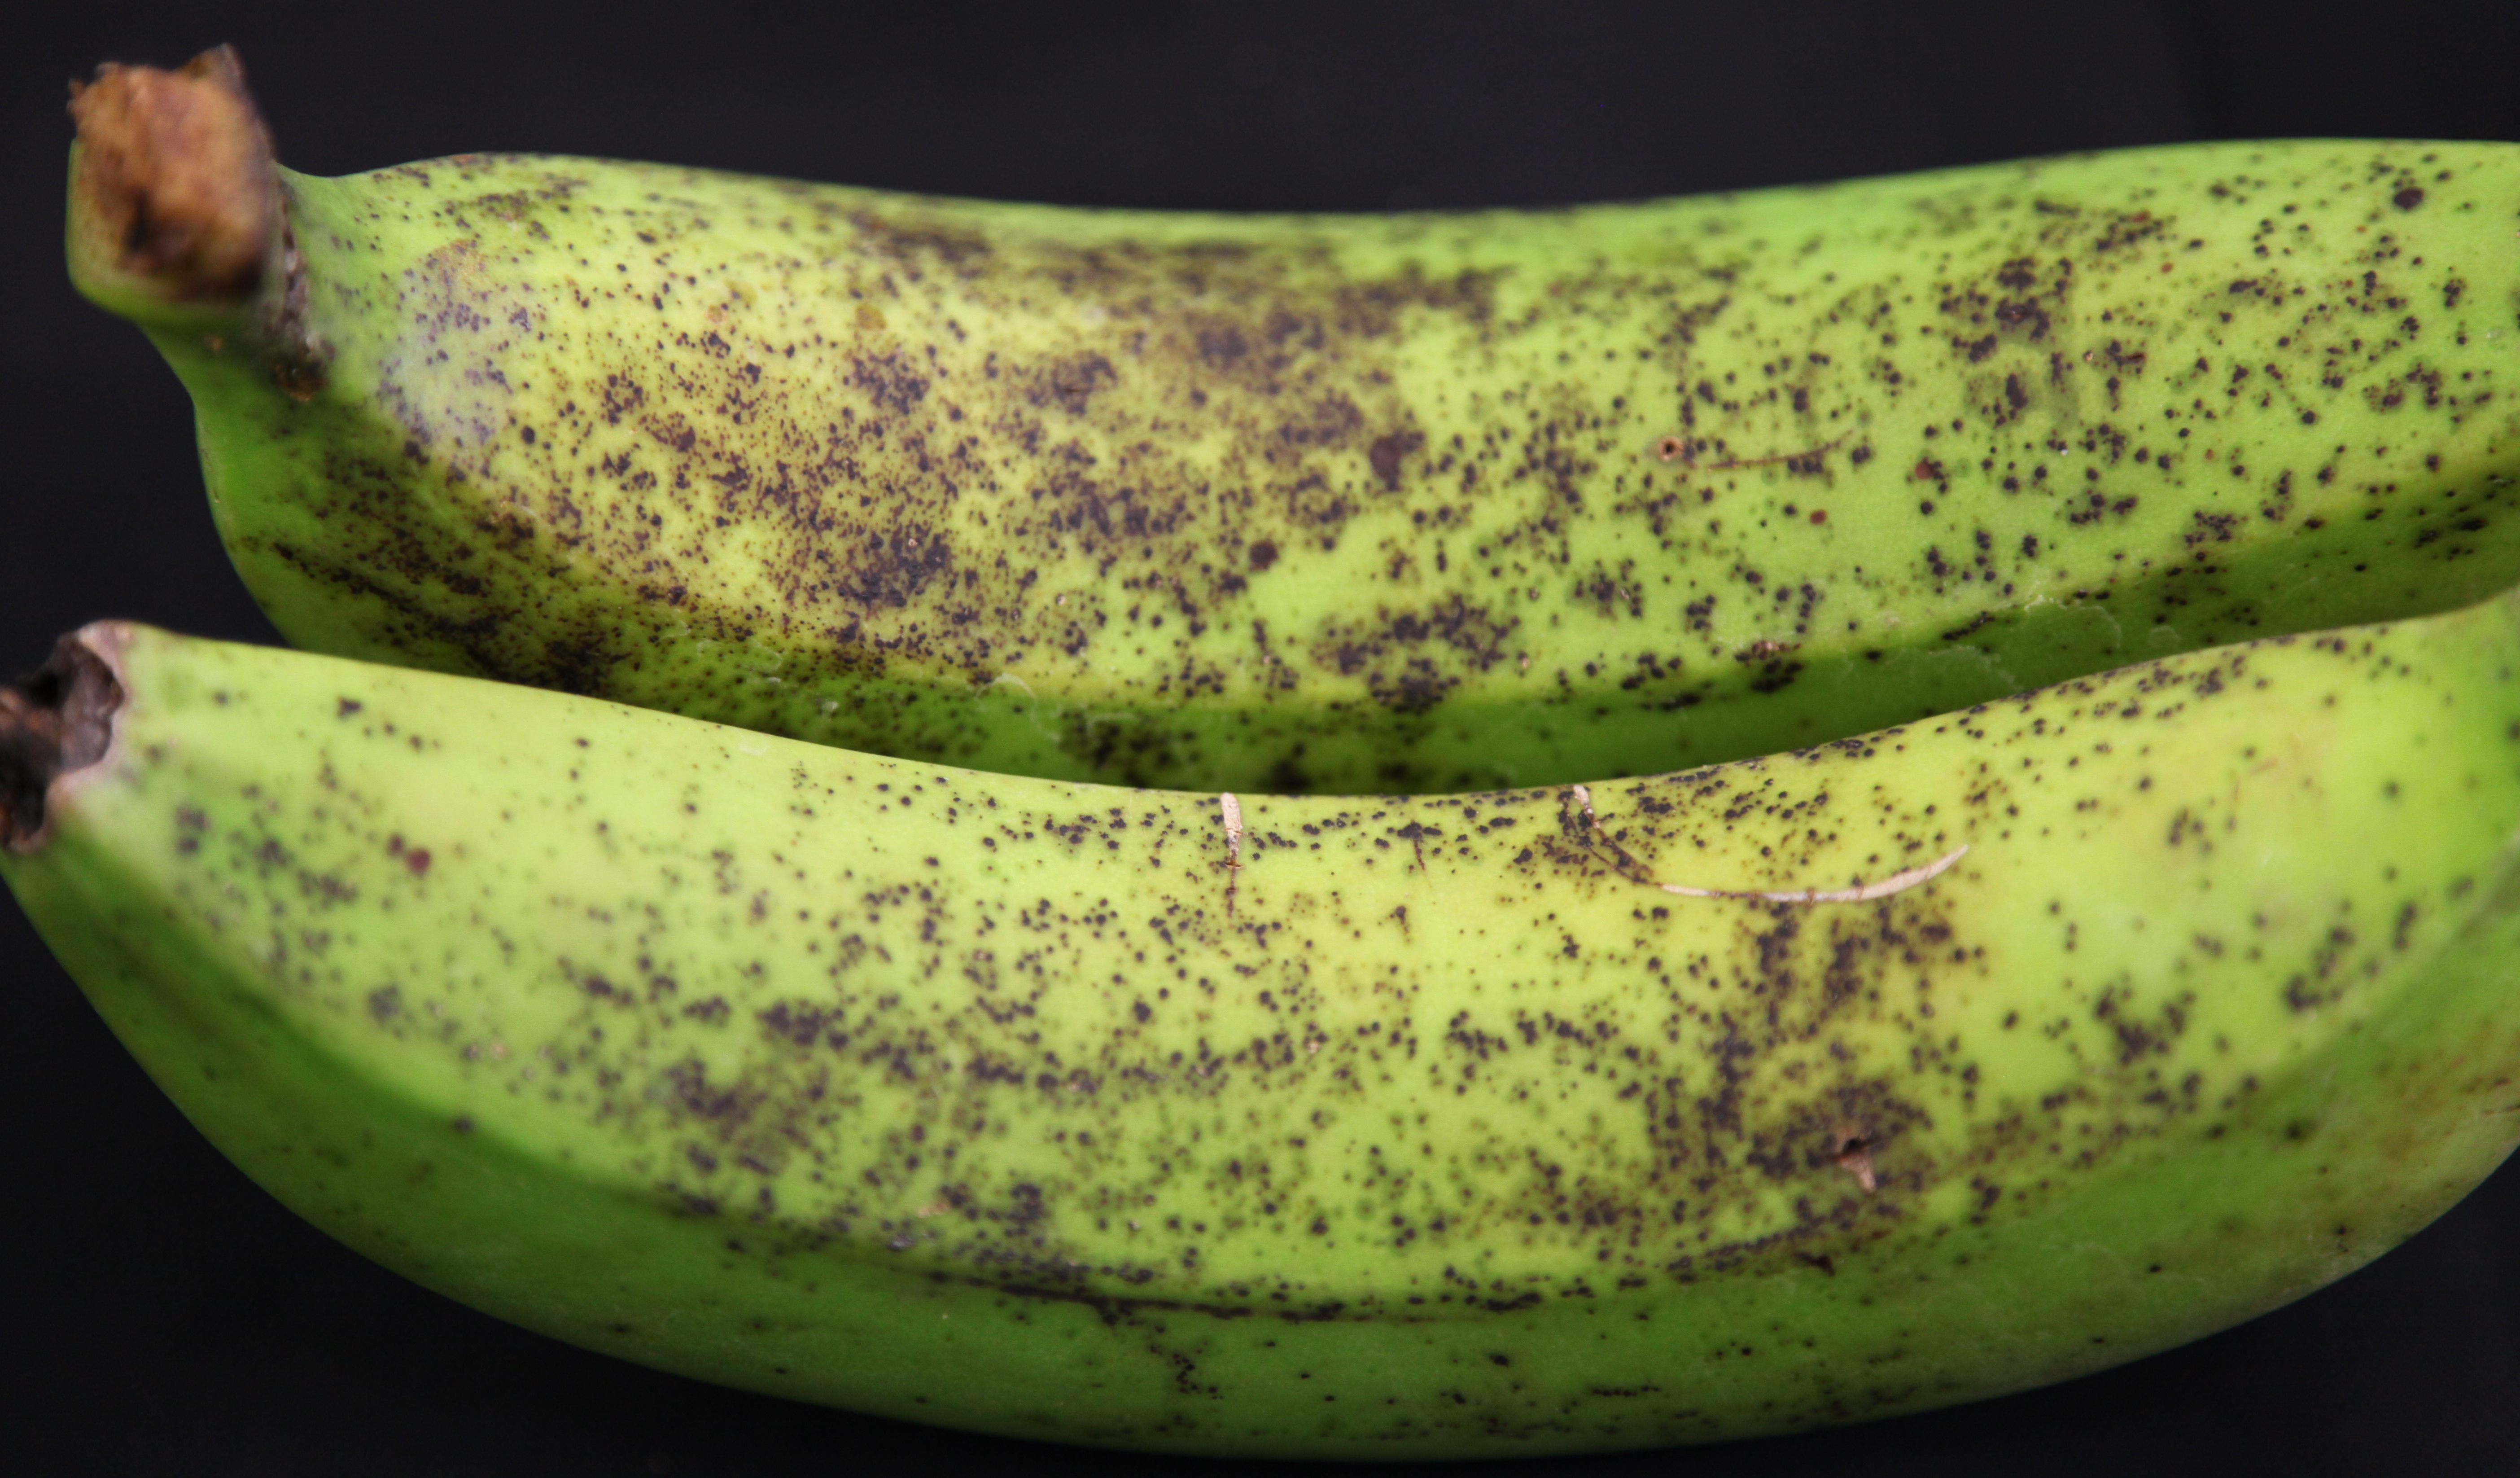 Two unripe bananas with brown fungal spots all over